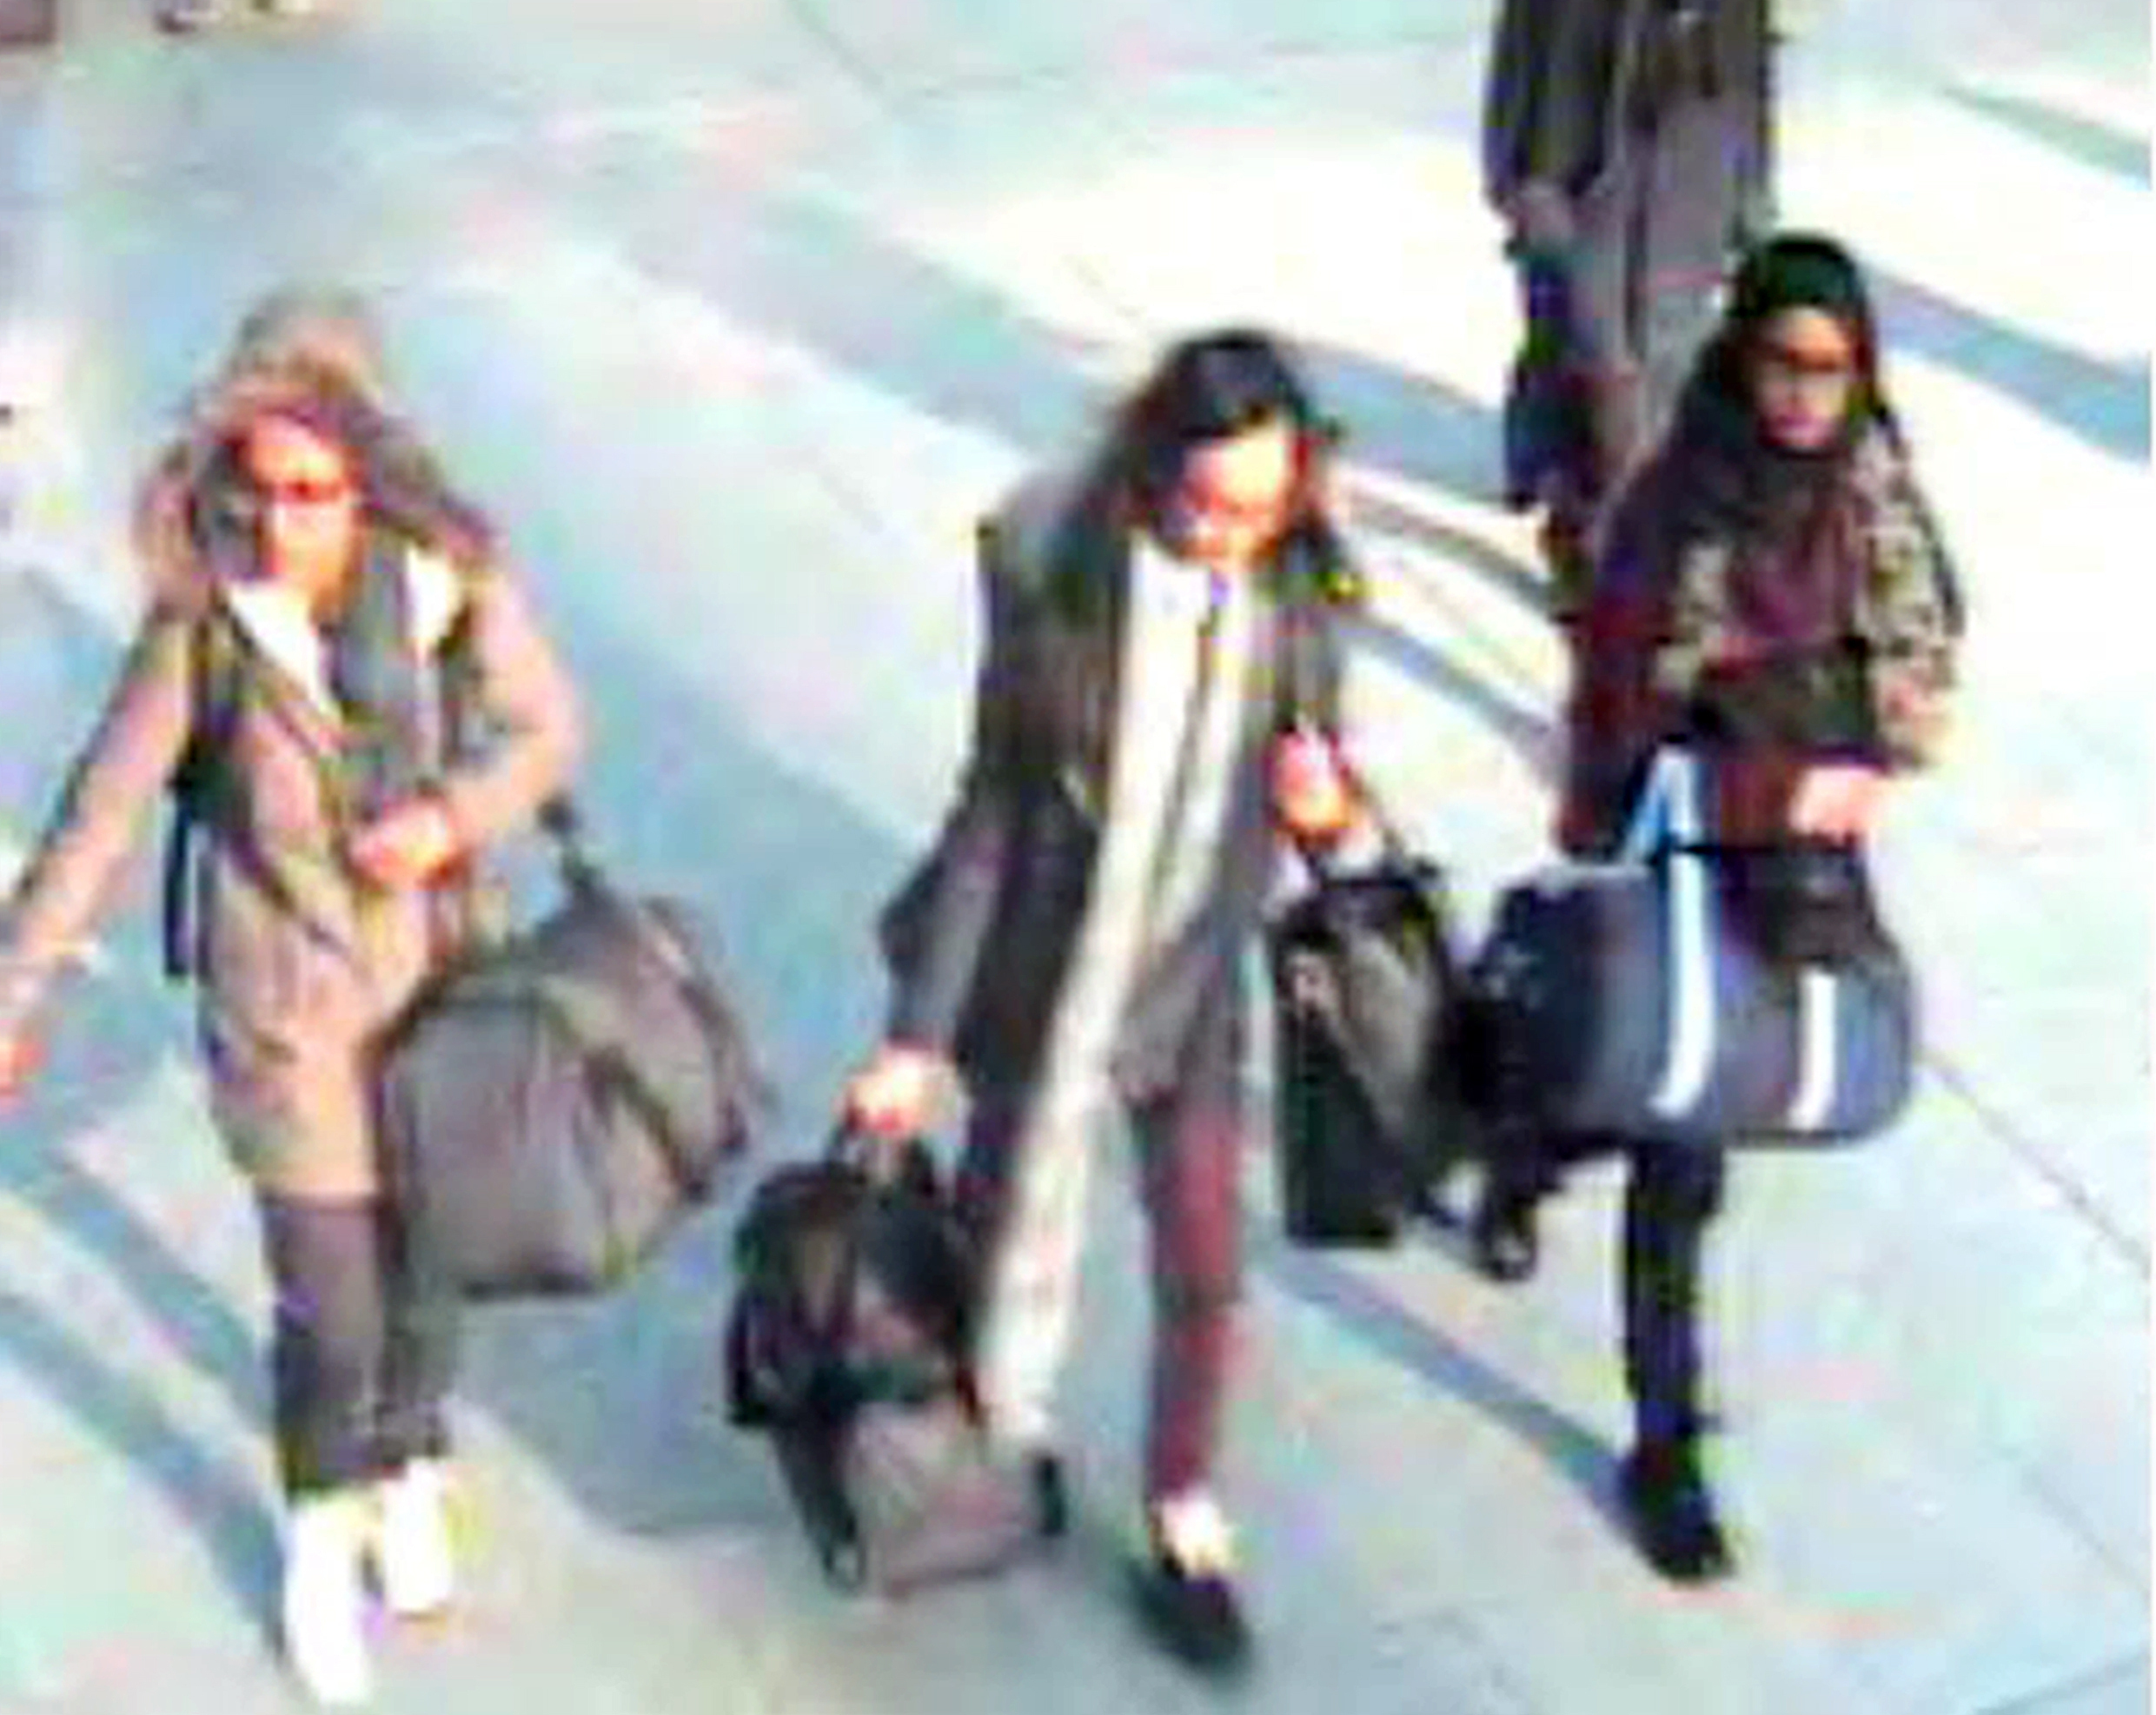 British schoolgirl who joined ISIS wants to return home